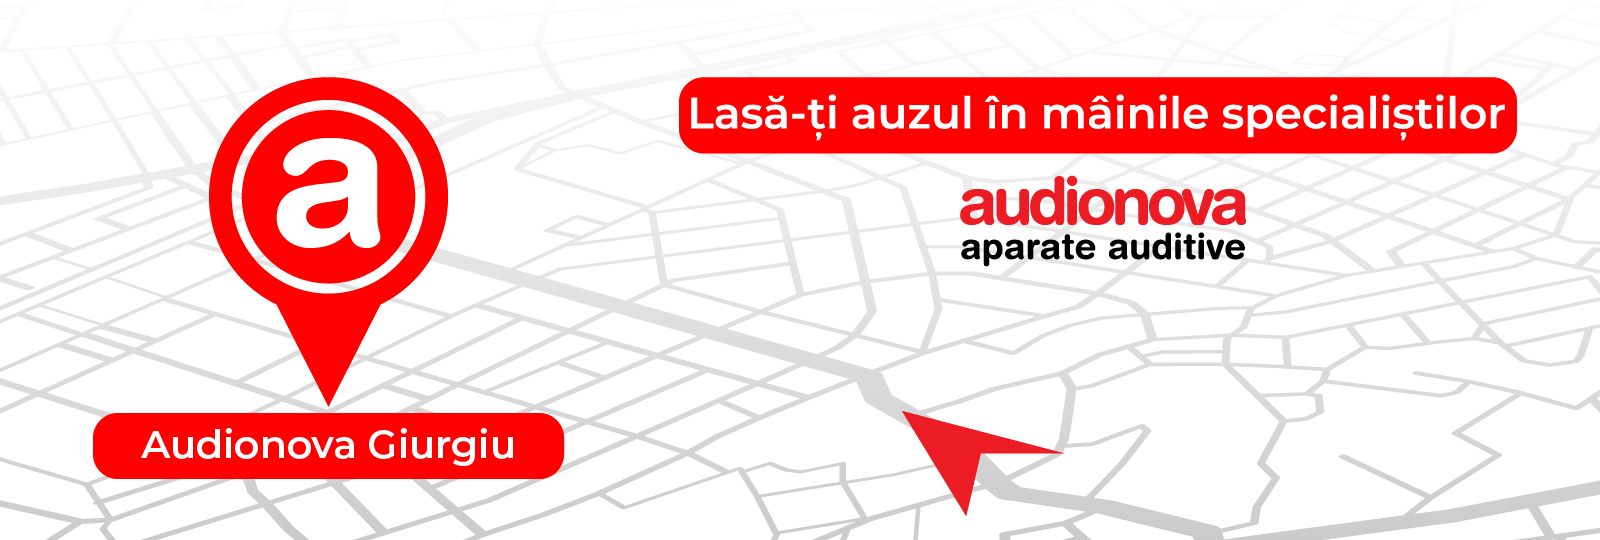 aparate auditive giurgiu